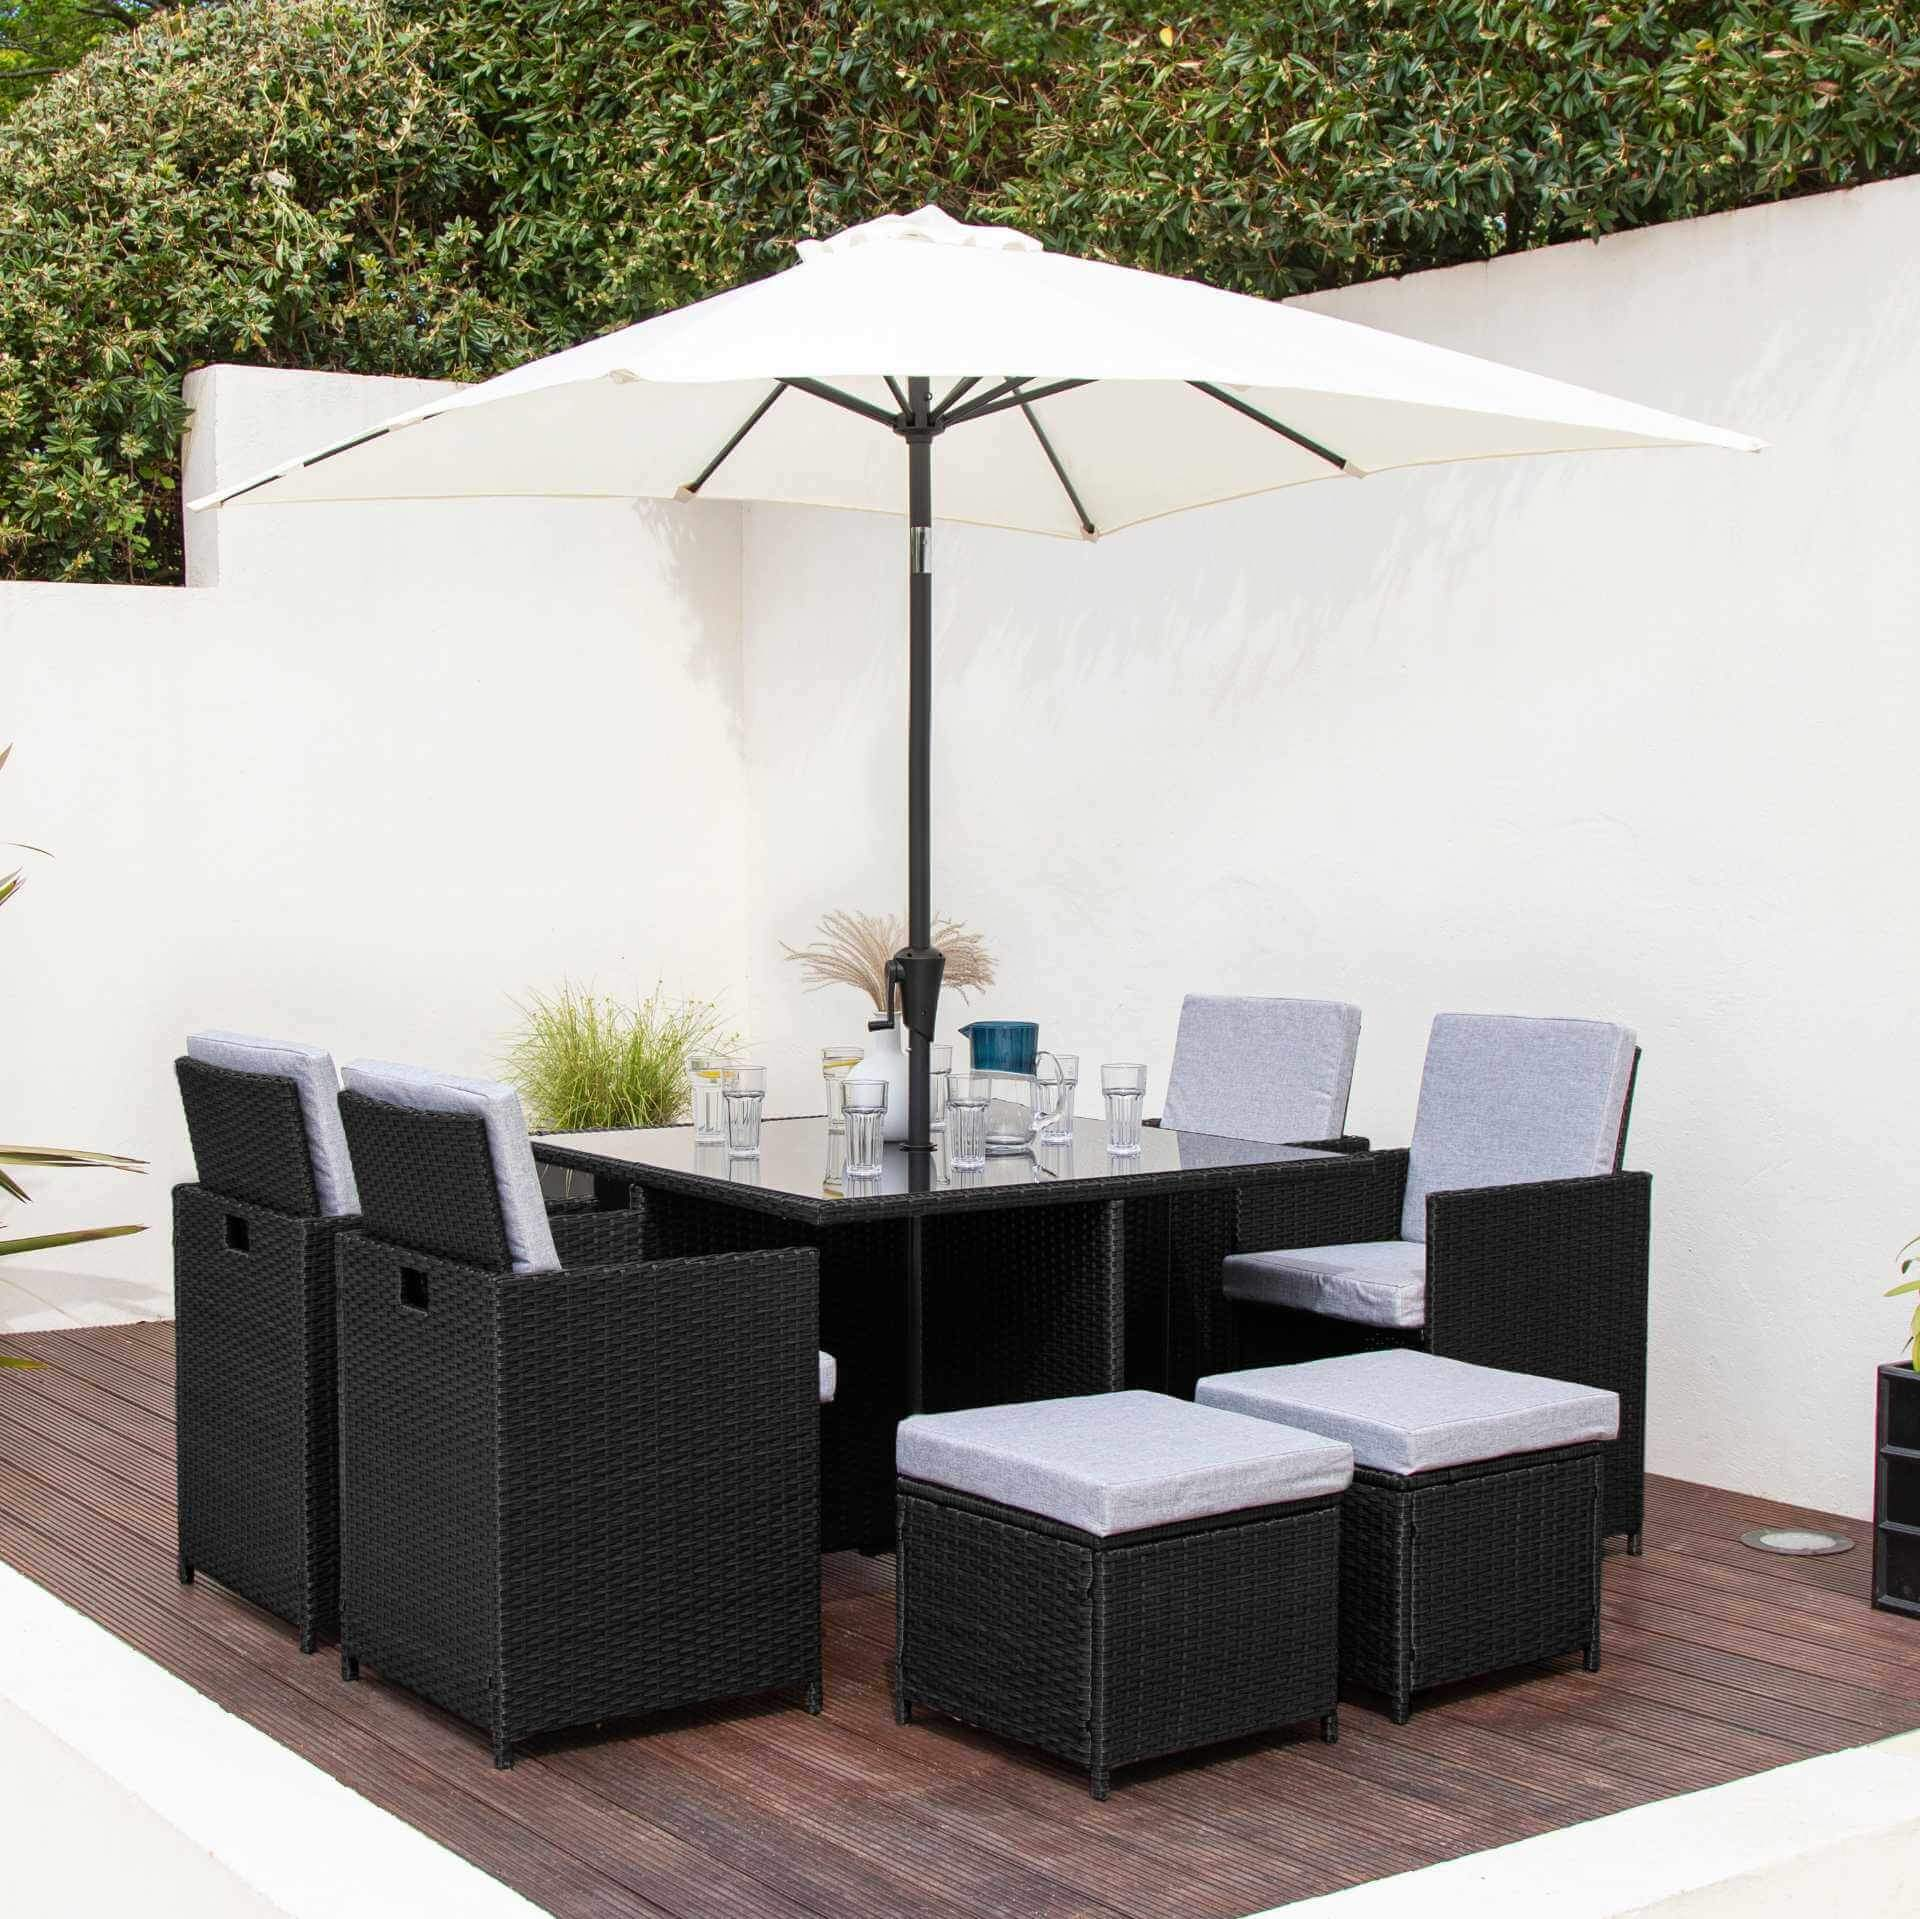 8 Seat Rattan Cube Outdoor Dining Set with Premium Parasol and Parasol Rain Cover - Black Weave - Laura James